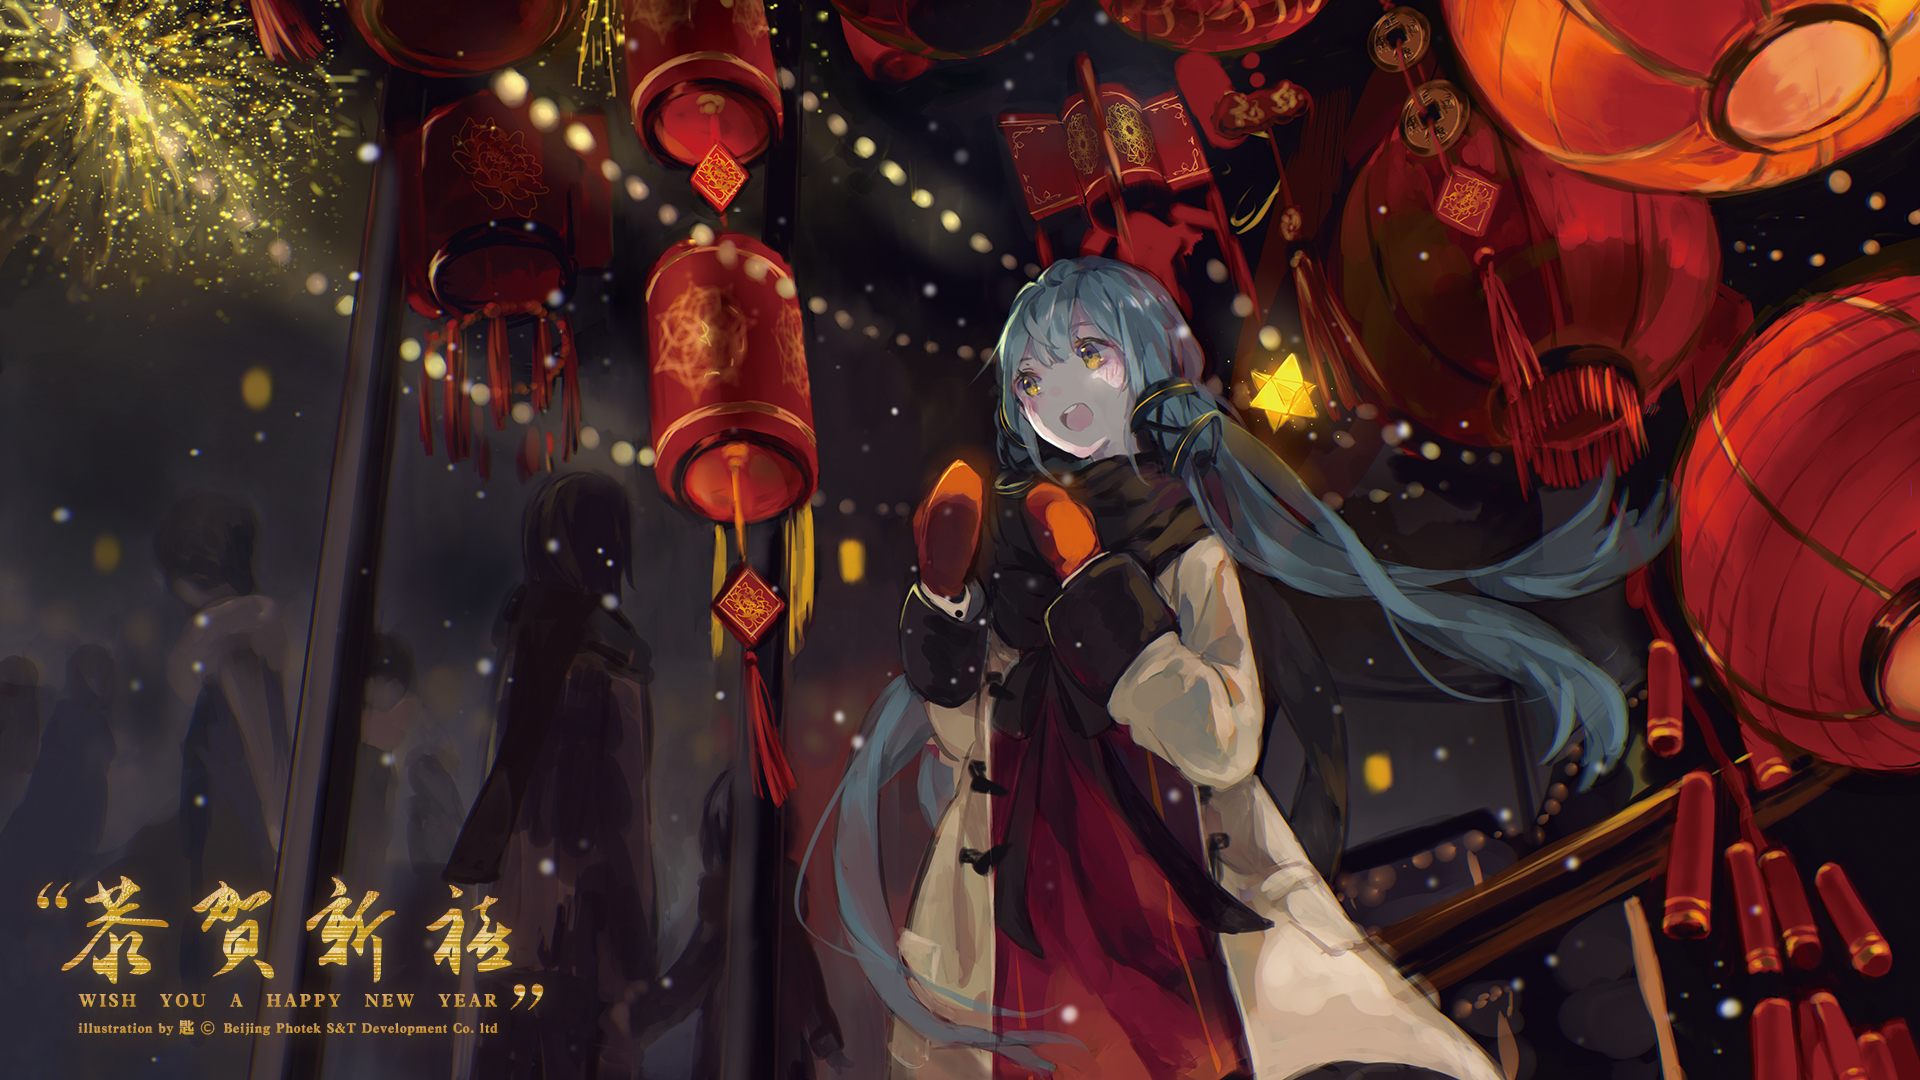 New Year Wallpaper Zerochan Anime Image Board